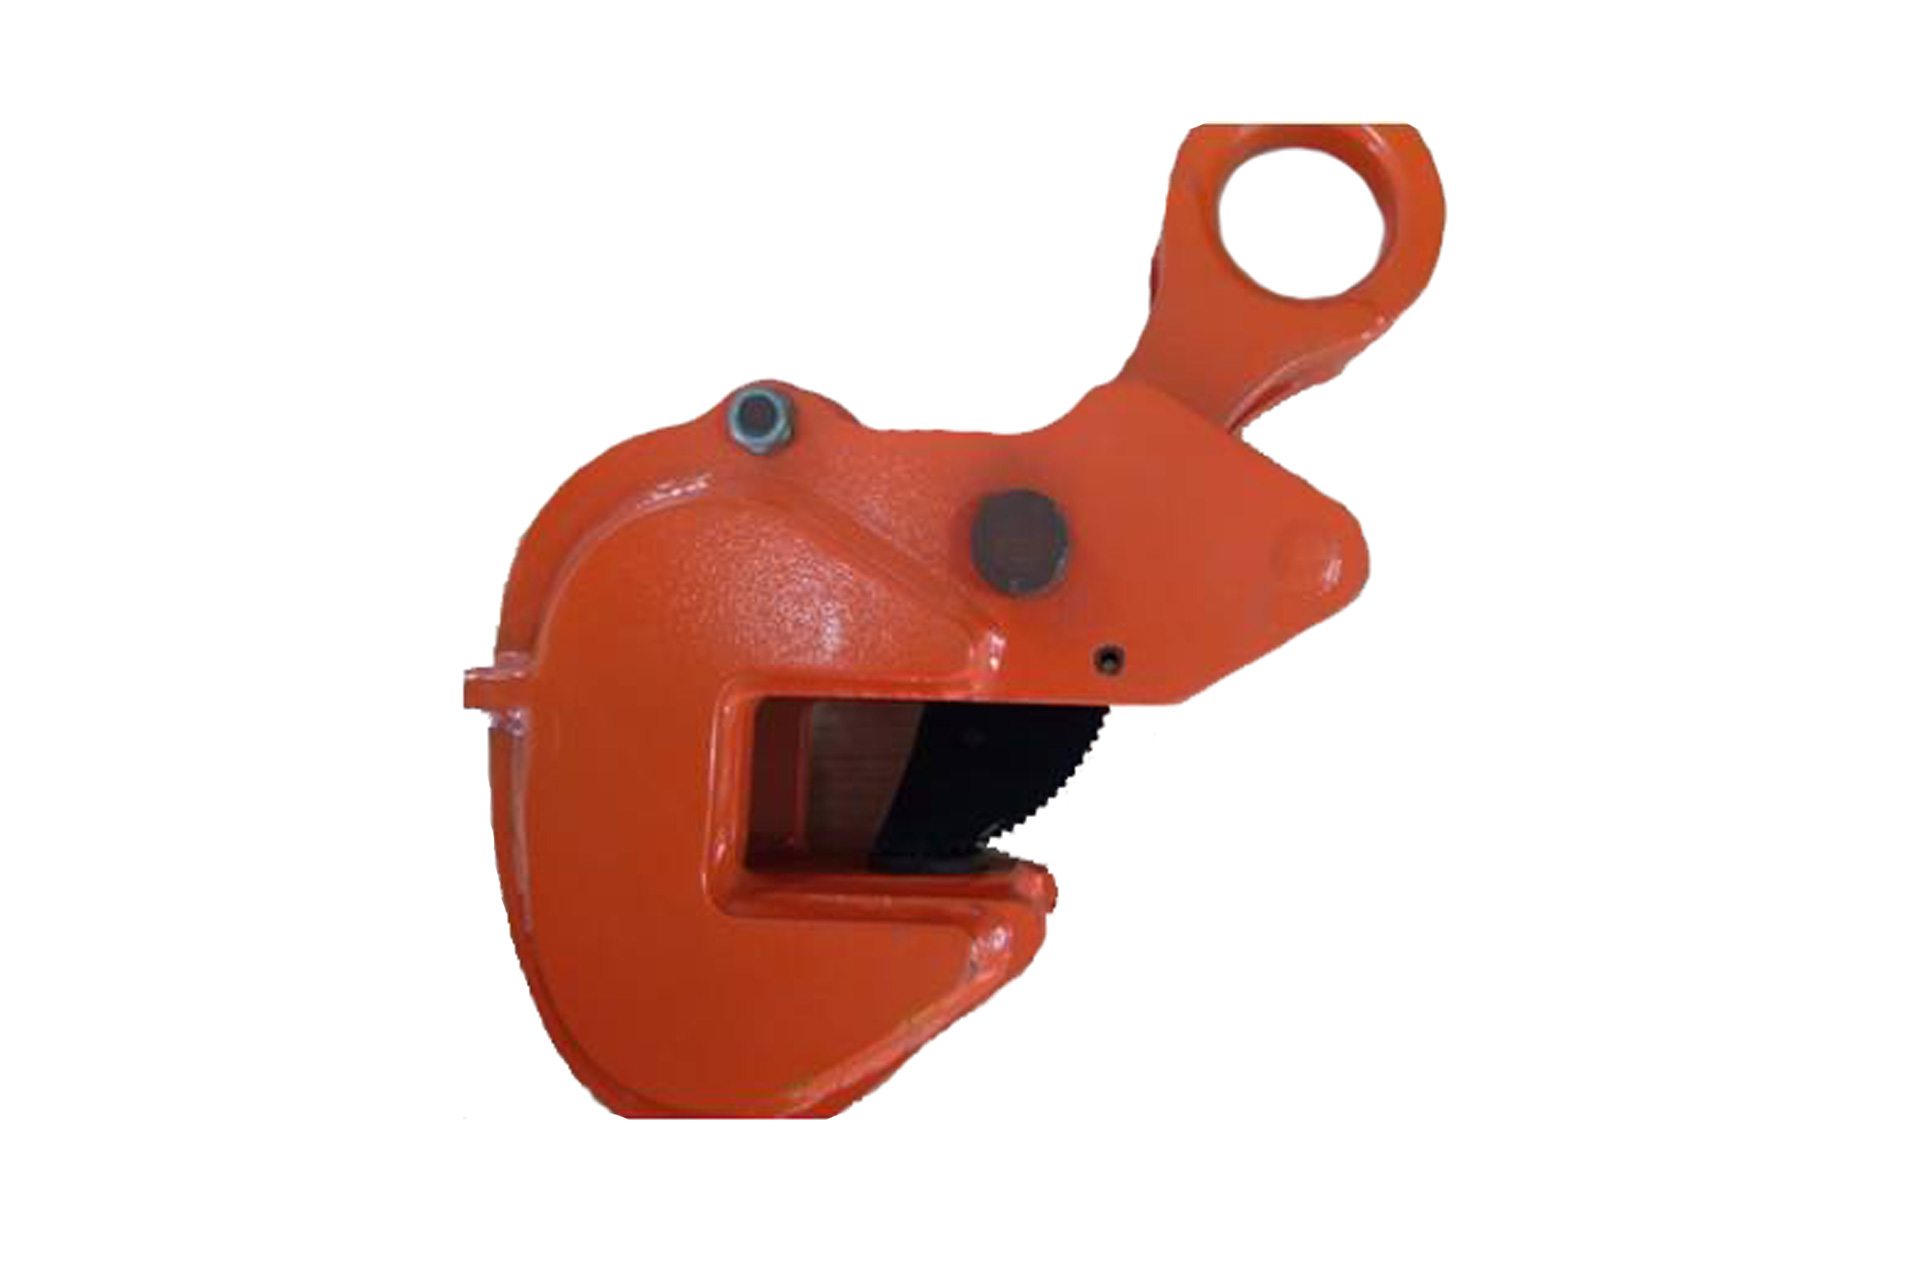 Horizontal plate lifting clamp with Safety lock